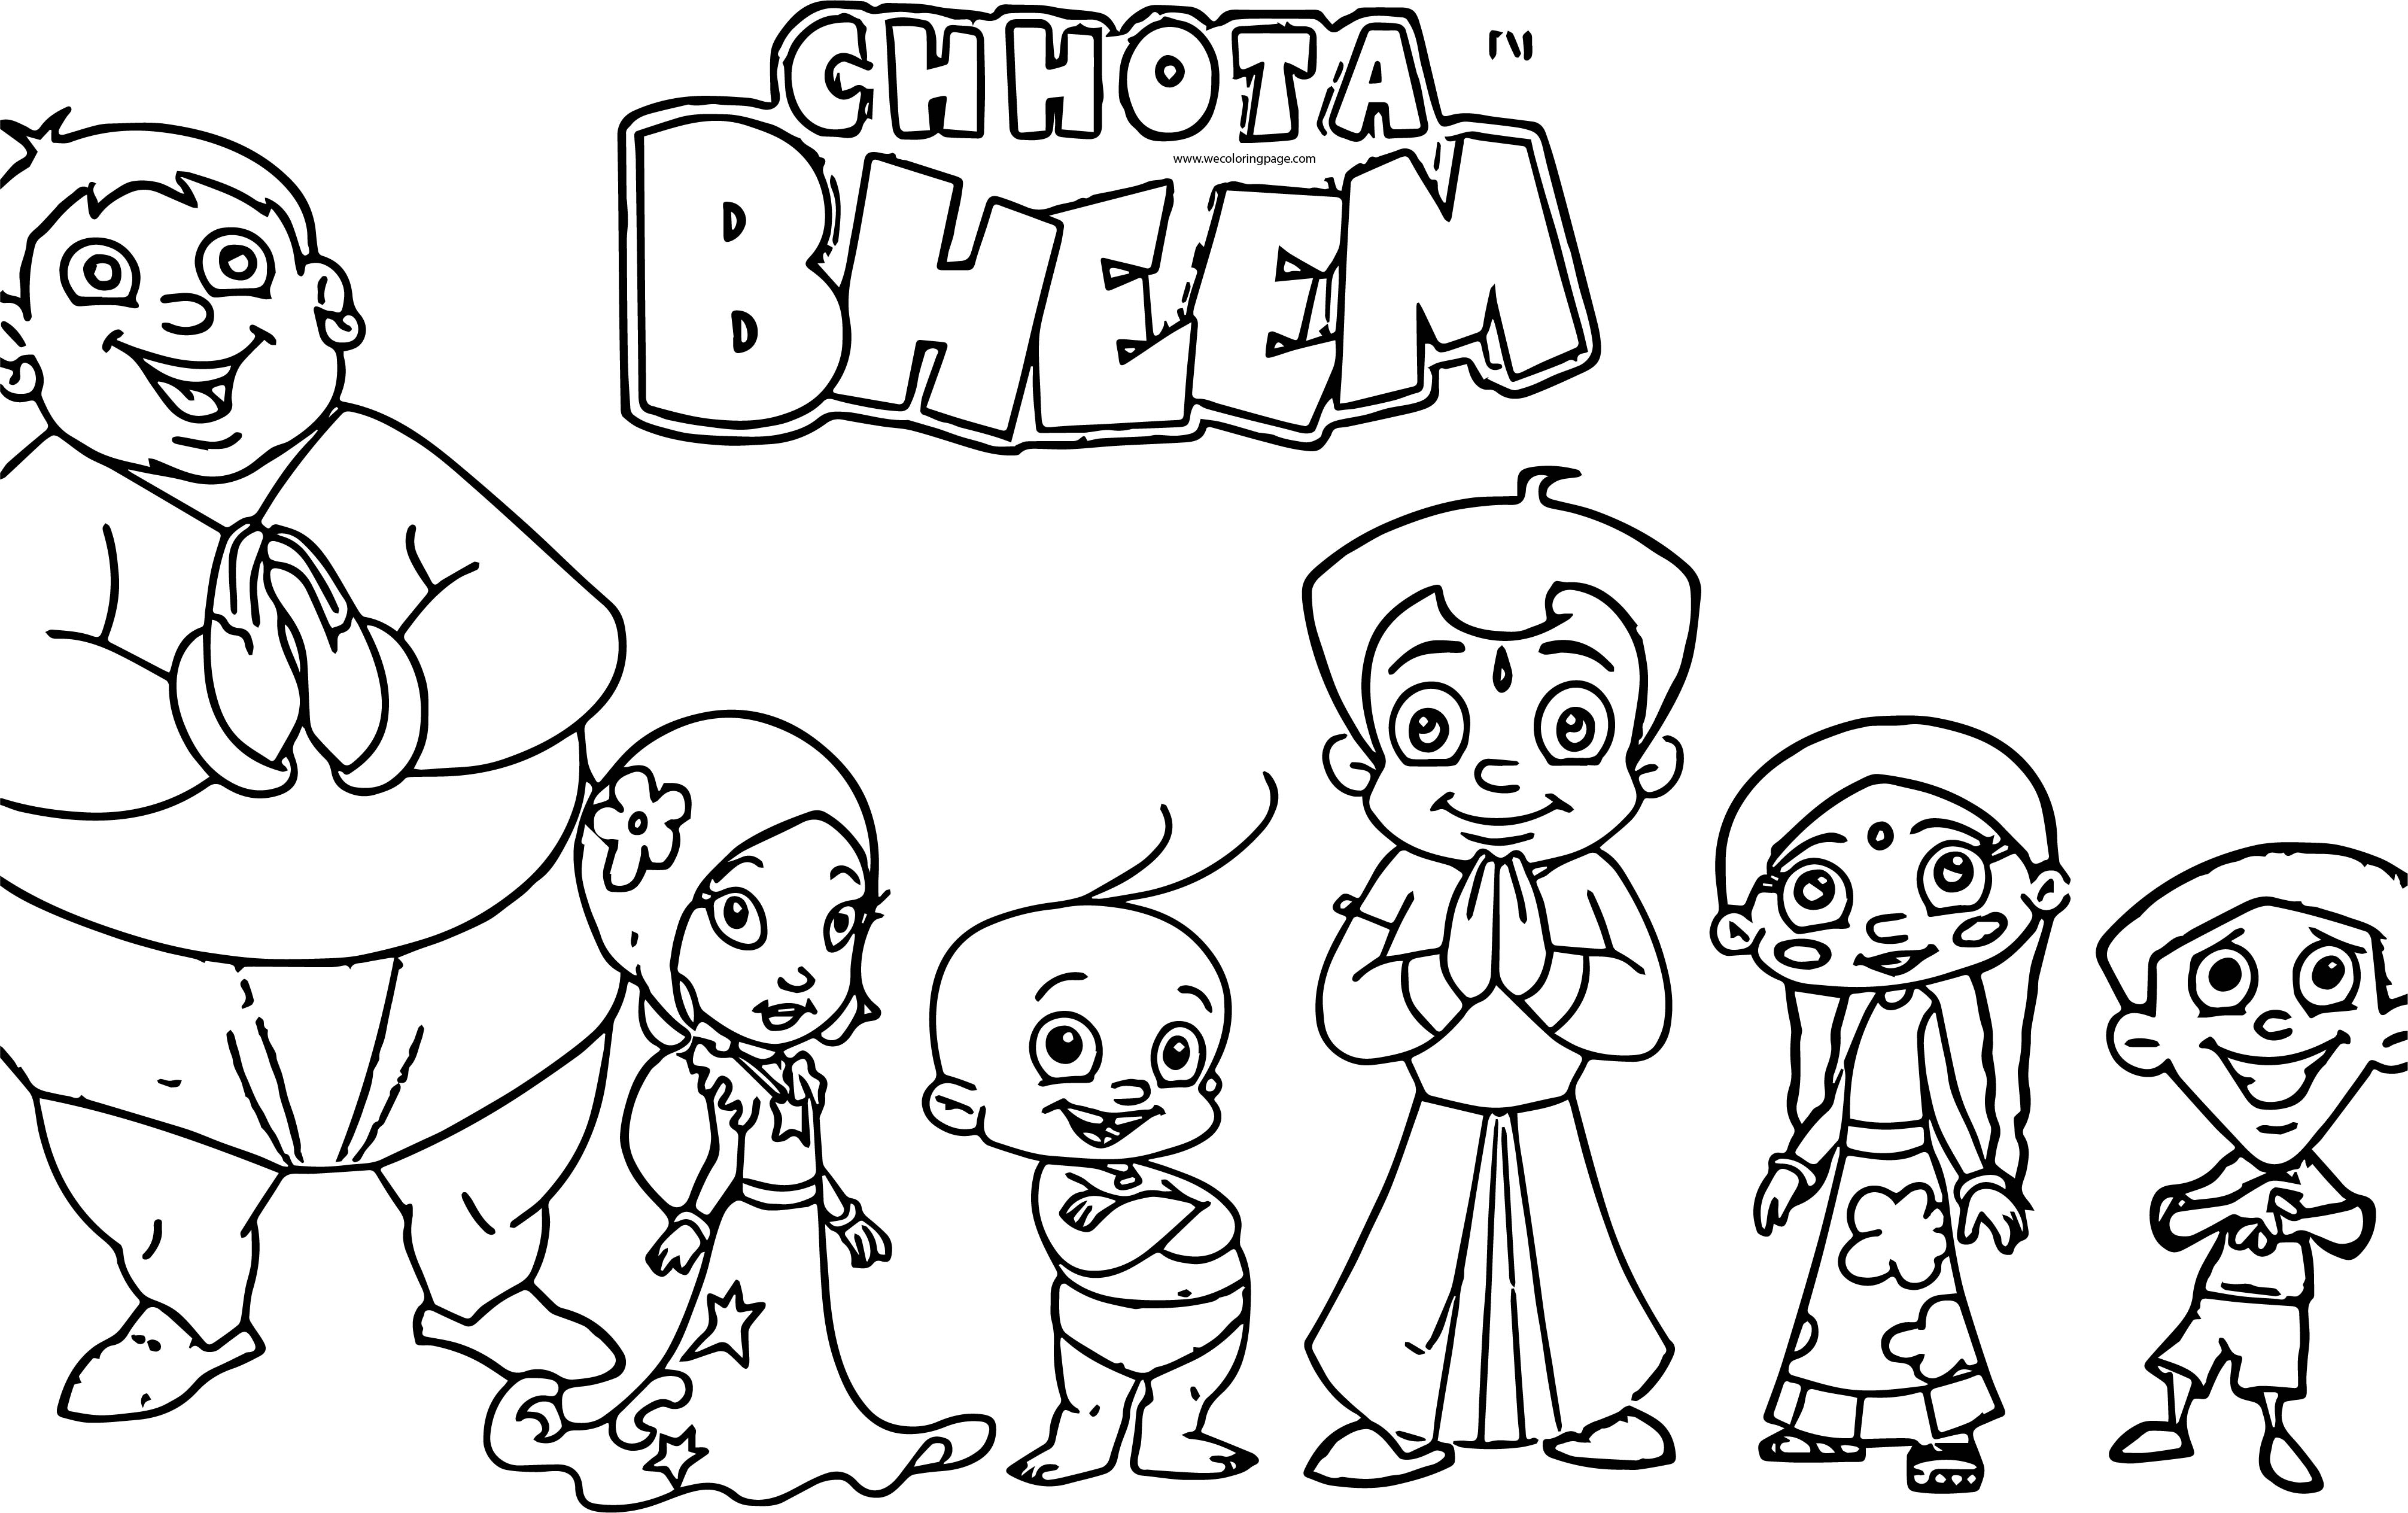 Chhota Bheem Friends Together Coloring Page